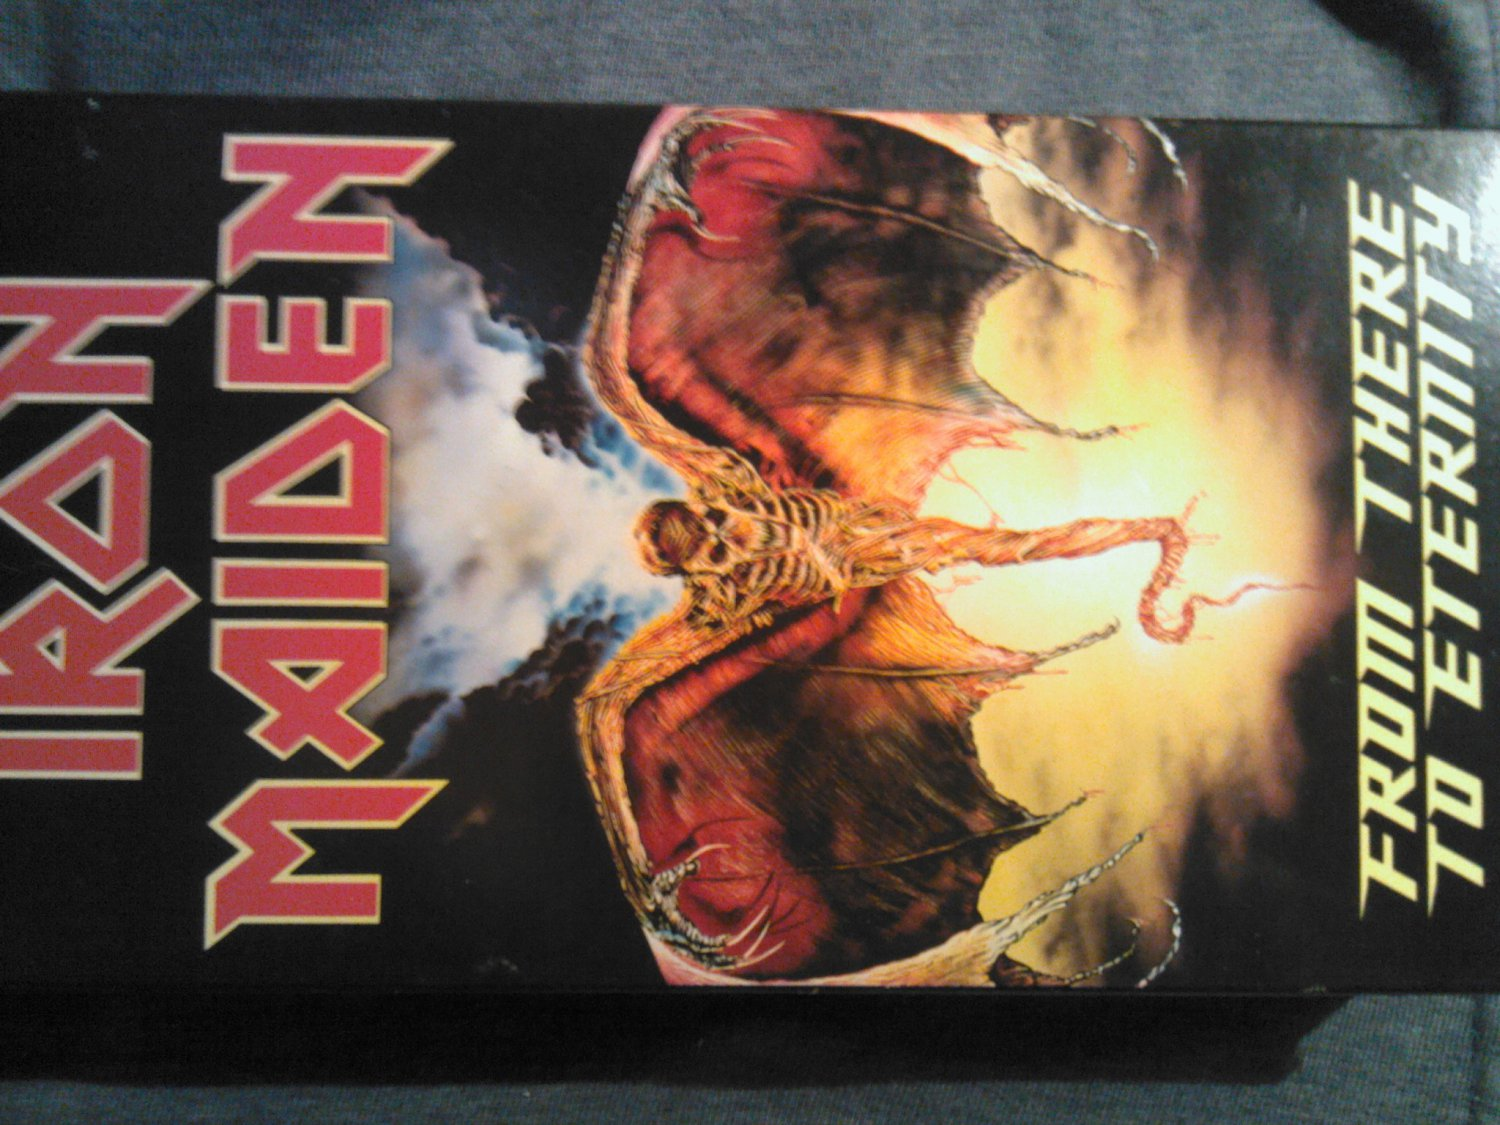 VHS IRON MAIDEN From There To Eternity videos 1992